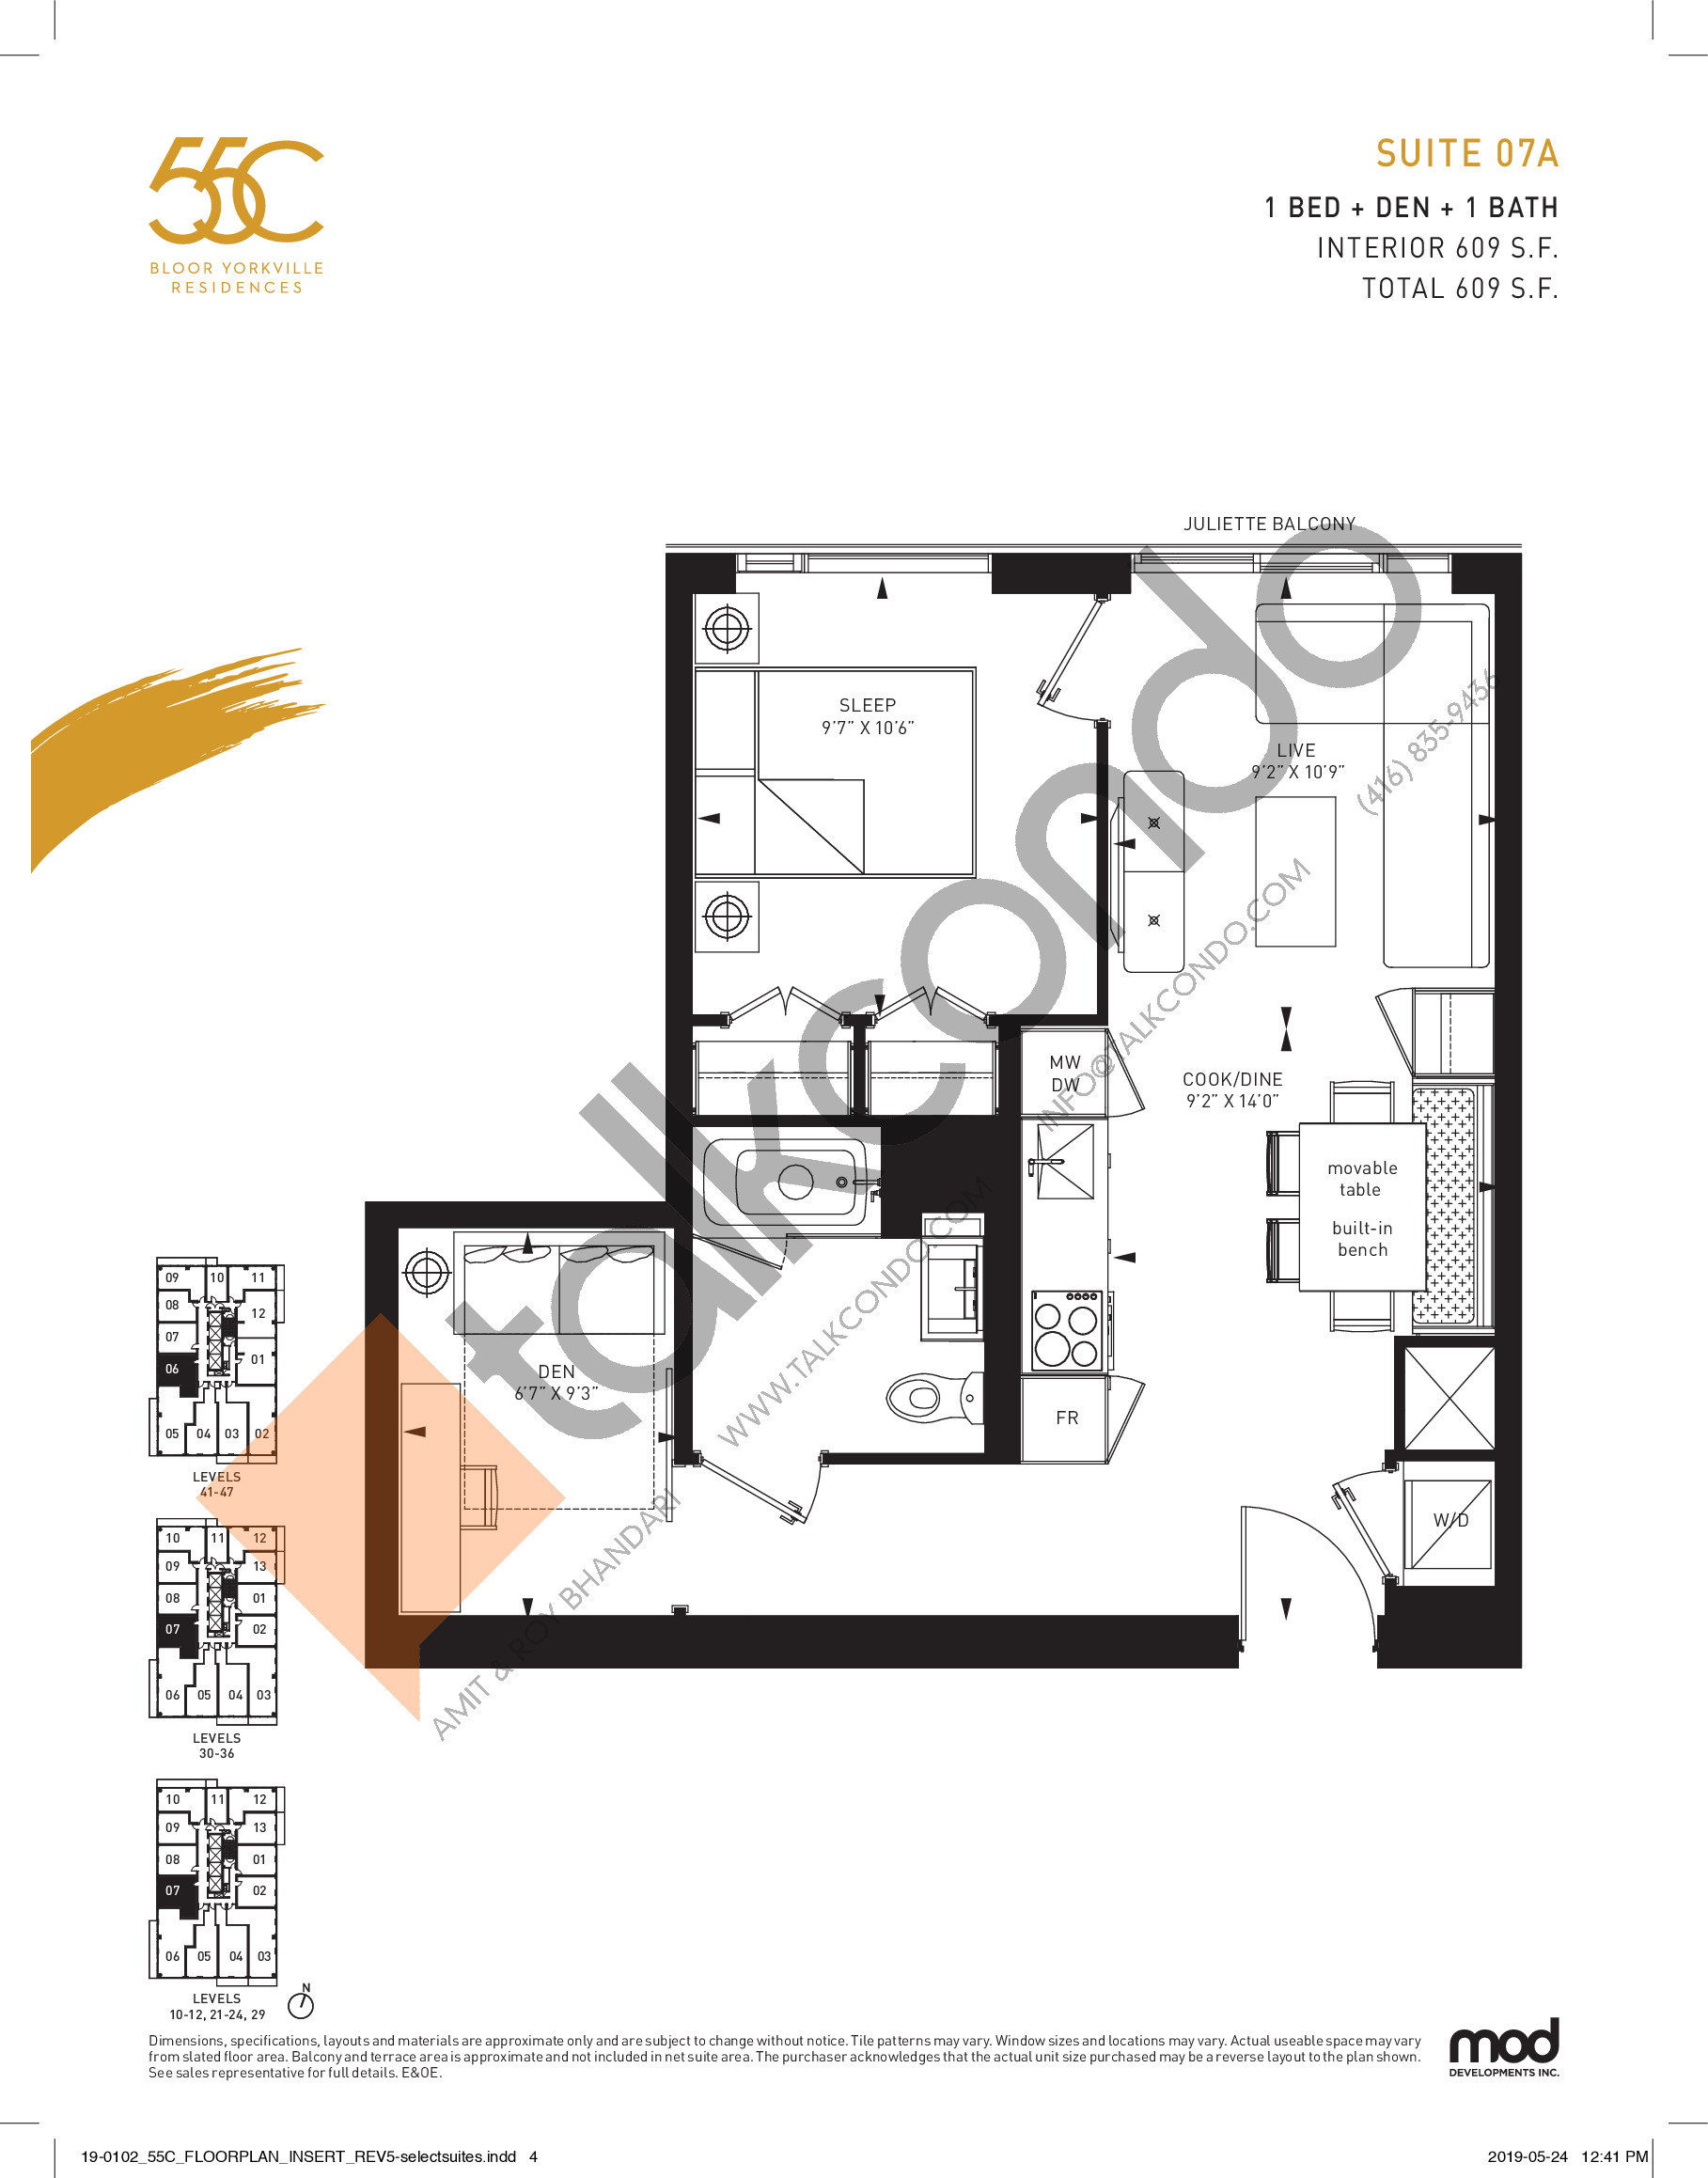 Suite 07A Floor Plan at 55C Condos - 609 sq.ft